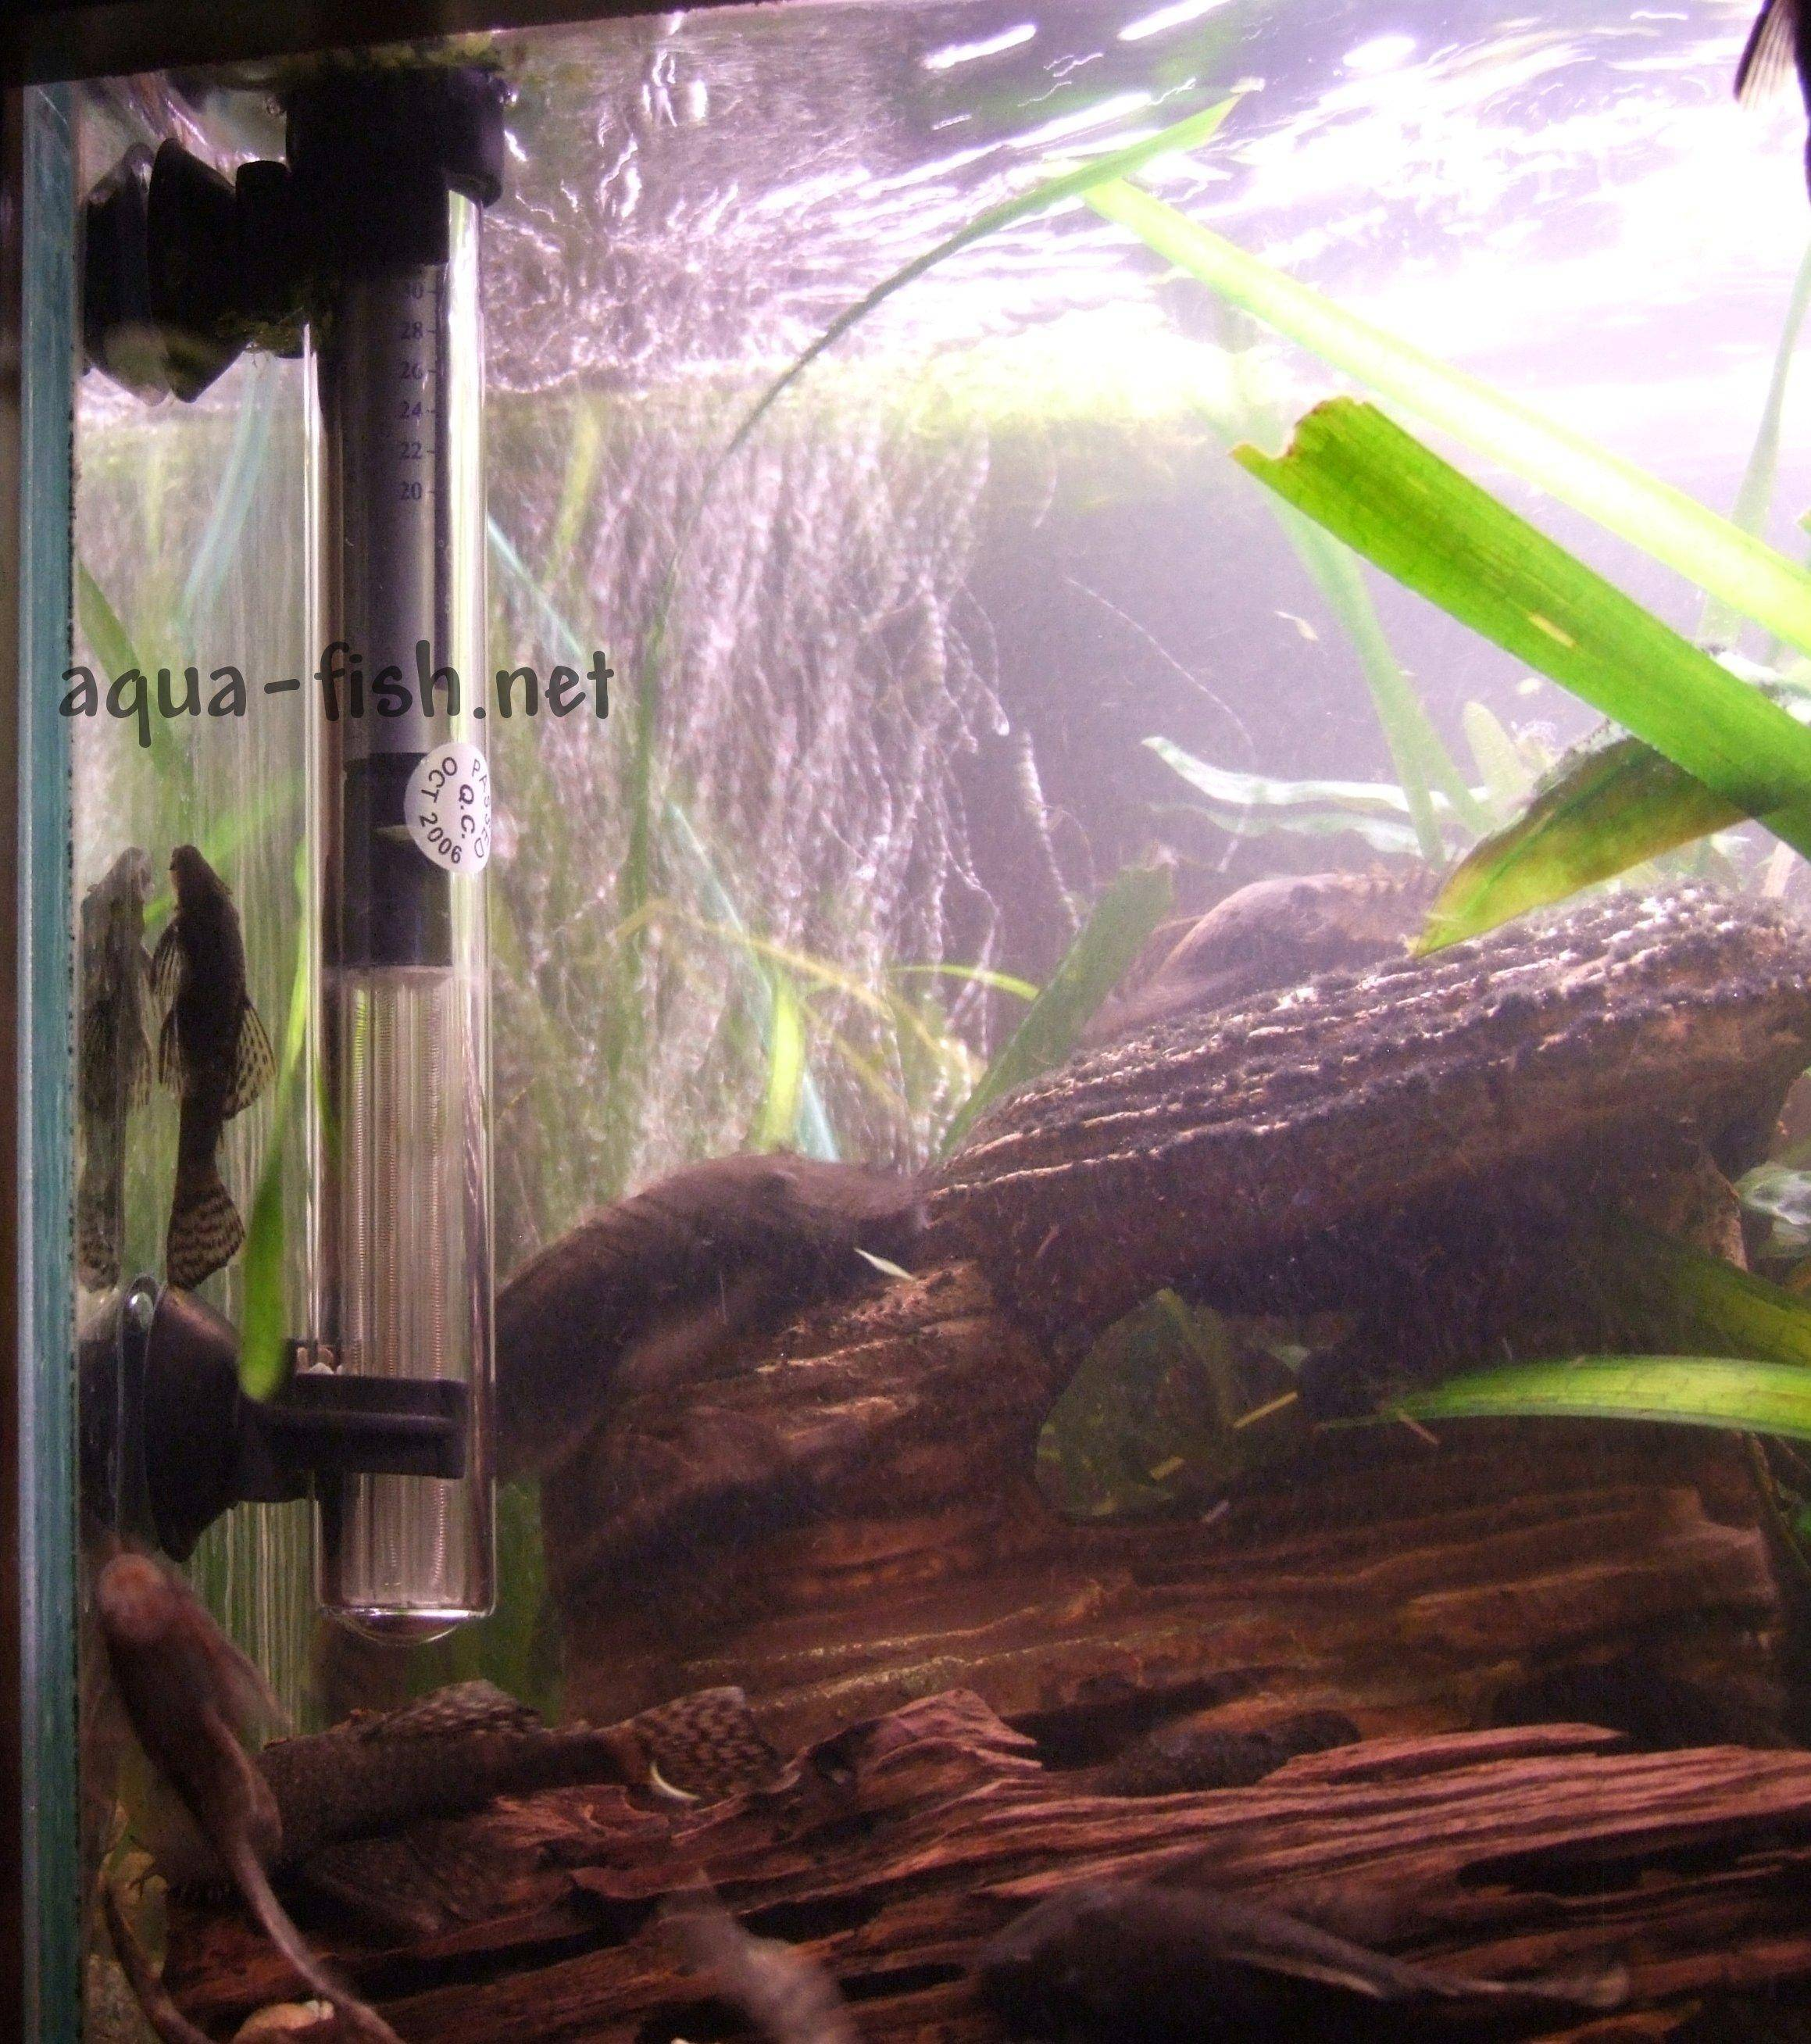 Fish aquarium just dial - Aquarium Heater Aquarium Heater Picture 2